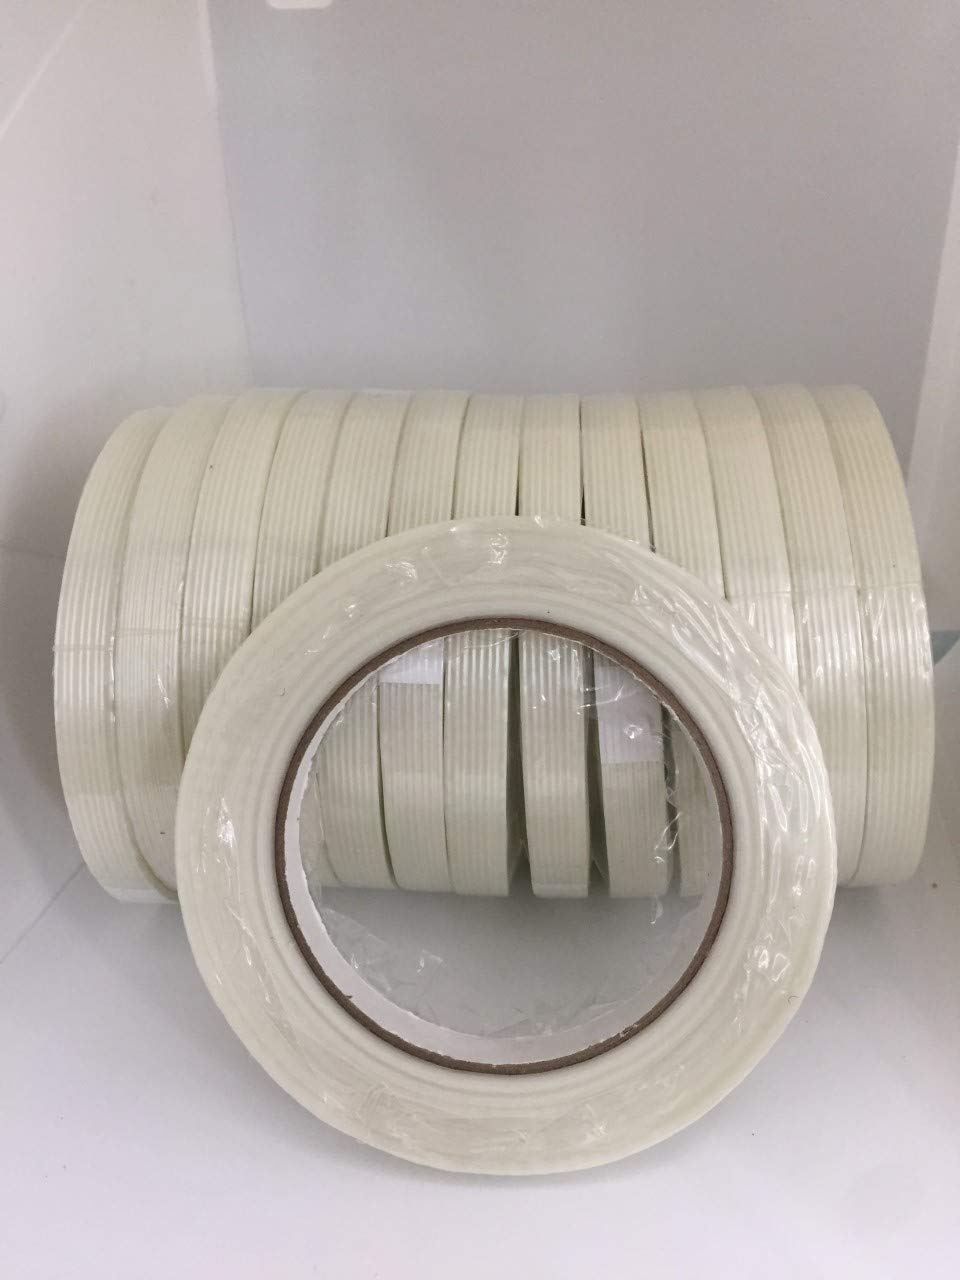 FIL-795 Filament Reinforced Strapping Tapes Buy 2 Rolls and TAKE 1 ROLL Free 1//2 X 60YD Pack of 1 ROLL ALLTAPESDEPOT Carton SEALIG Tape